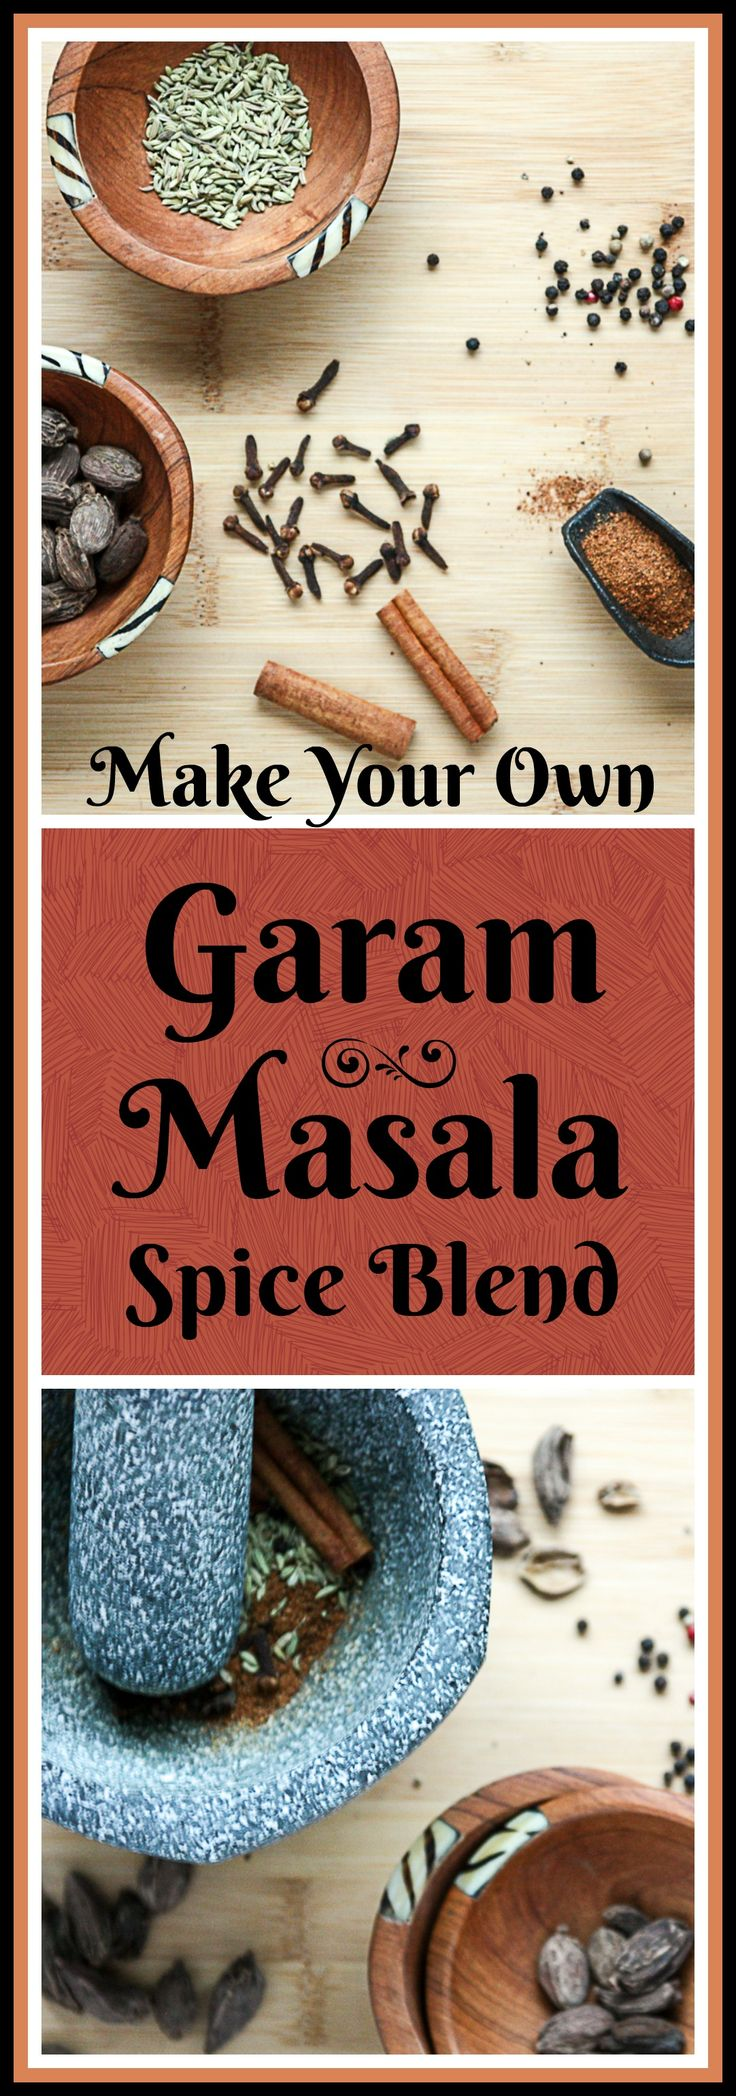 Garam Masala is a wonderful spice blend to warm up your dishes and add some interest to the new year. But don't buy a packaged mix. Making your own is easy, and the flavour difference is worth it.